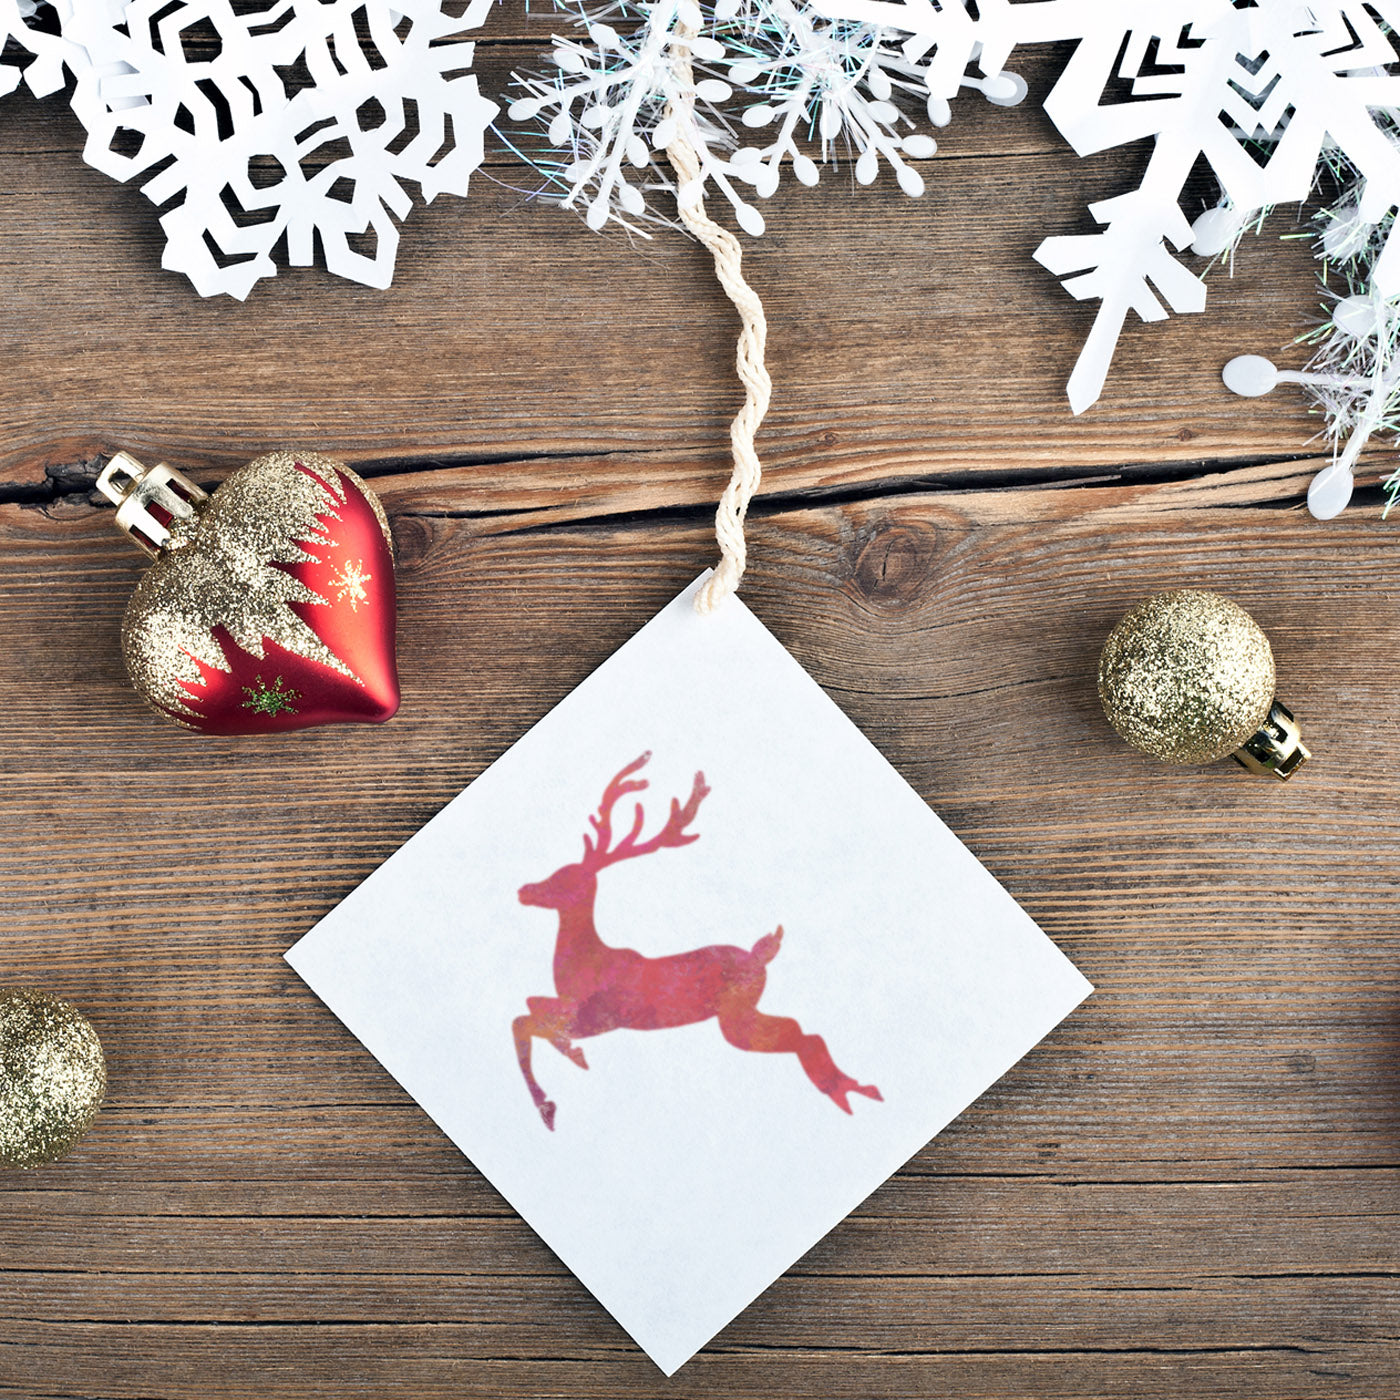 Mini Reindeer and Snowflakes Stencil - CraftStar